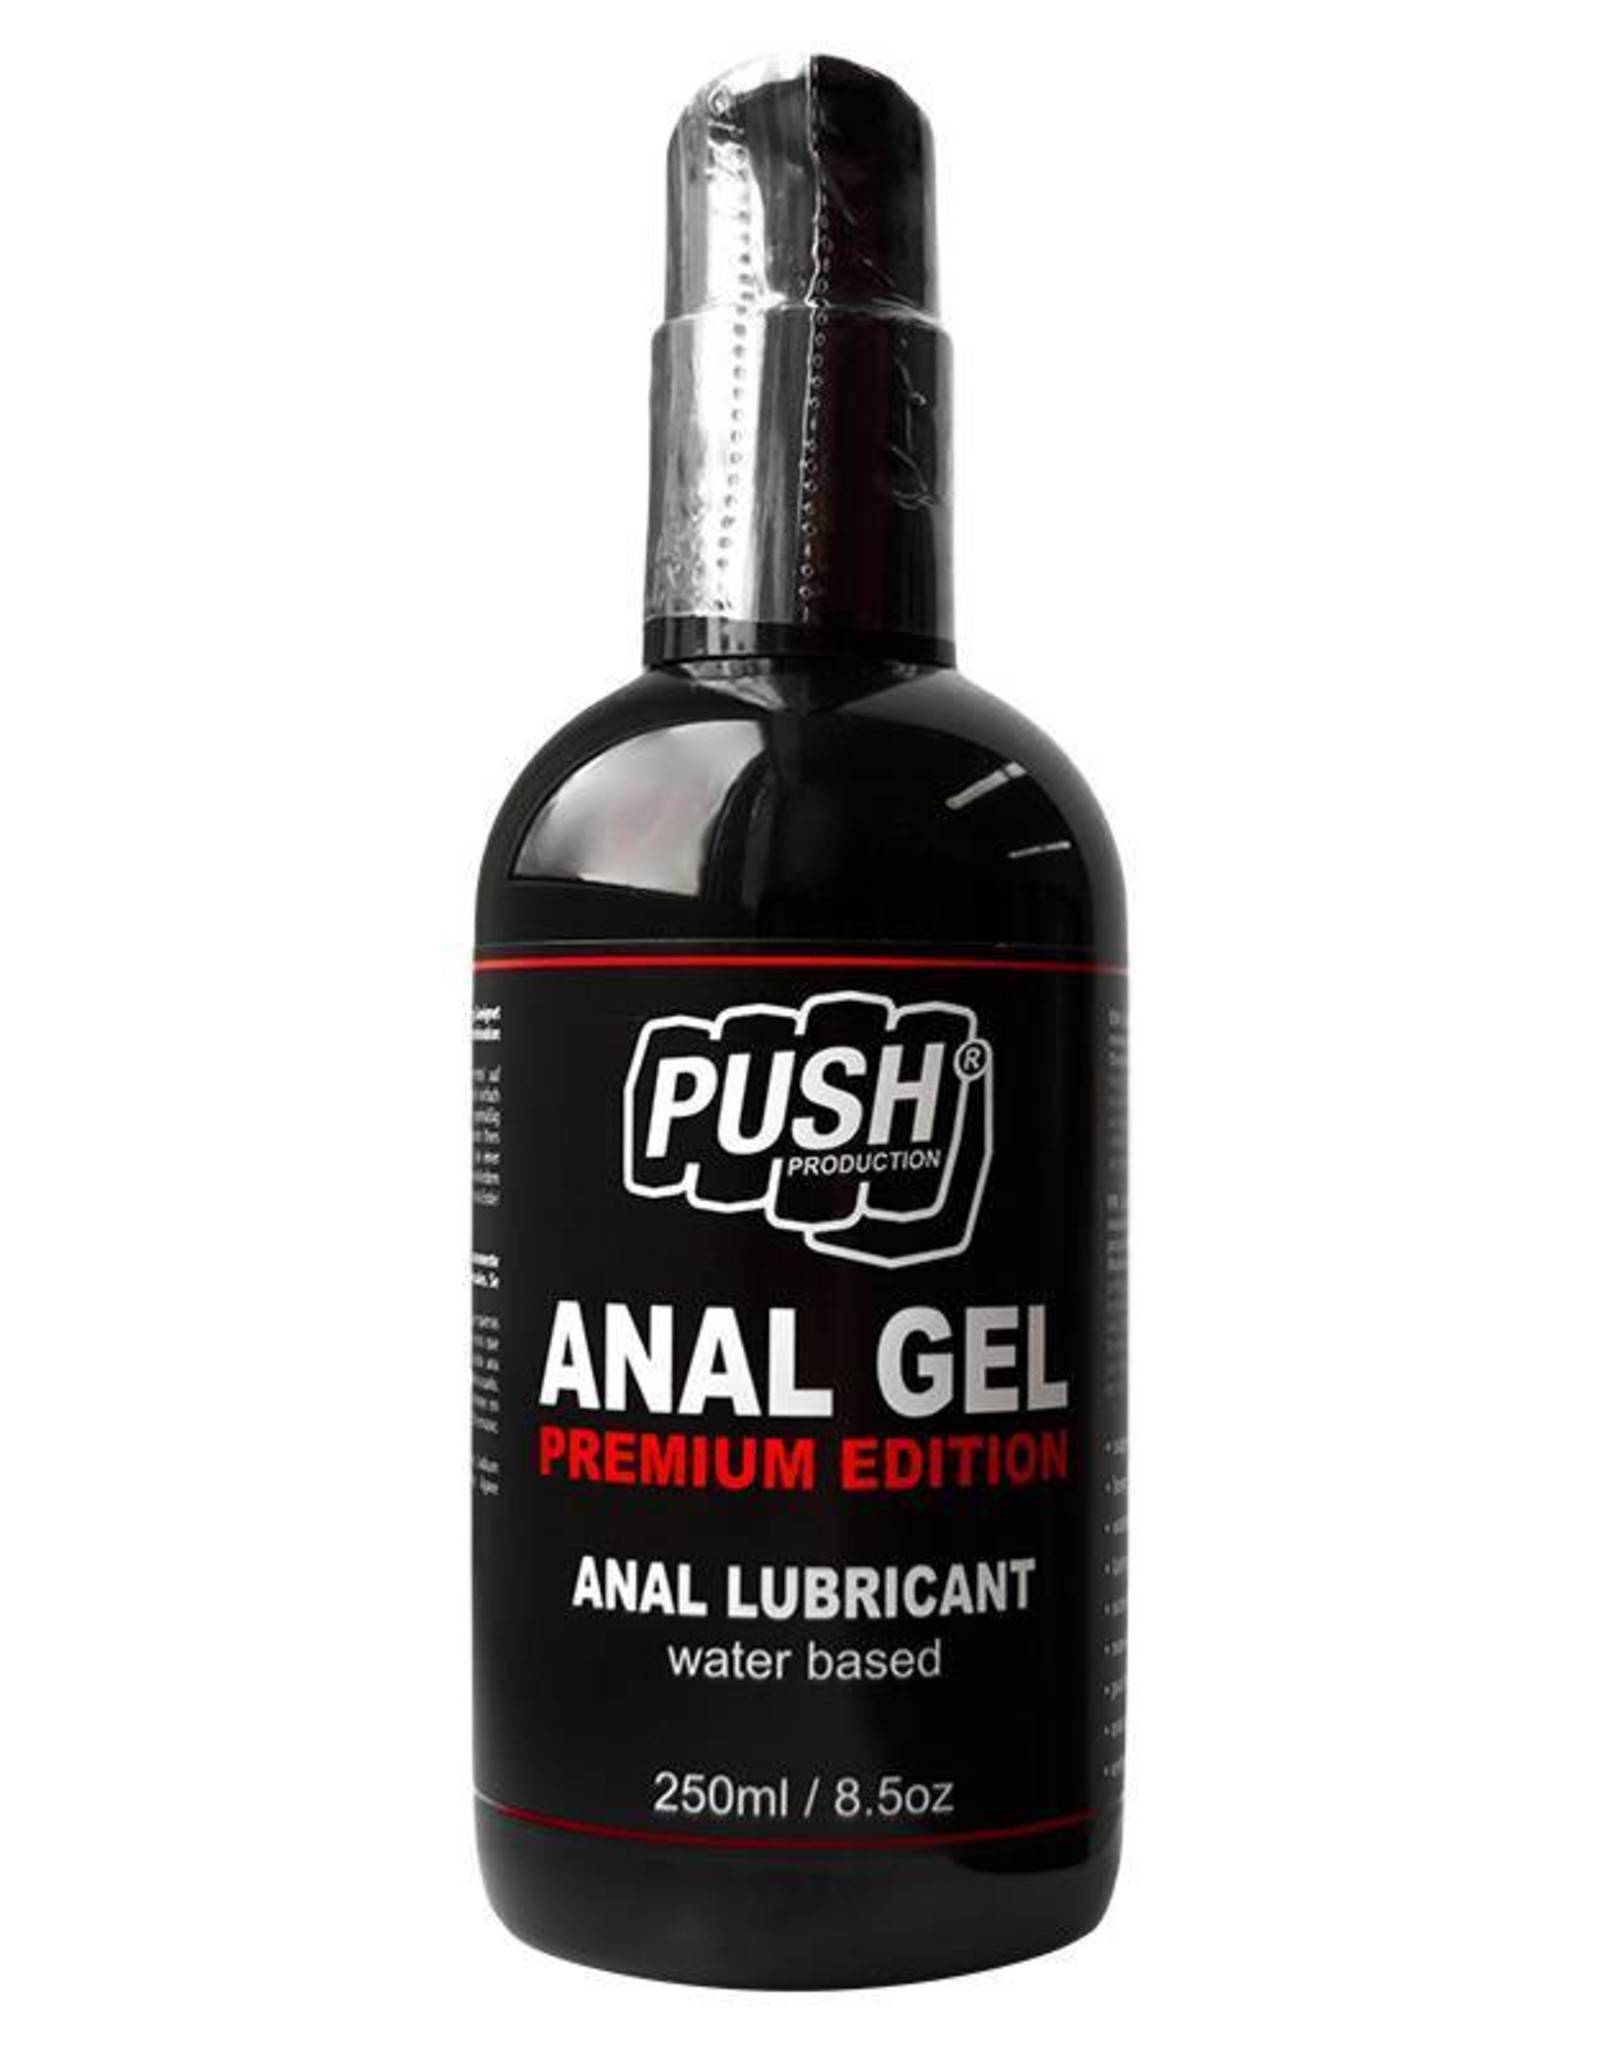 Push Anal Gel Premium Edition 250ml